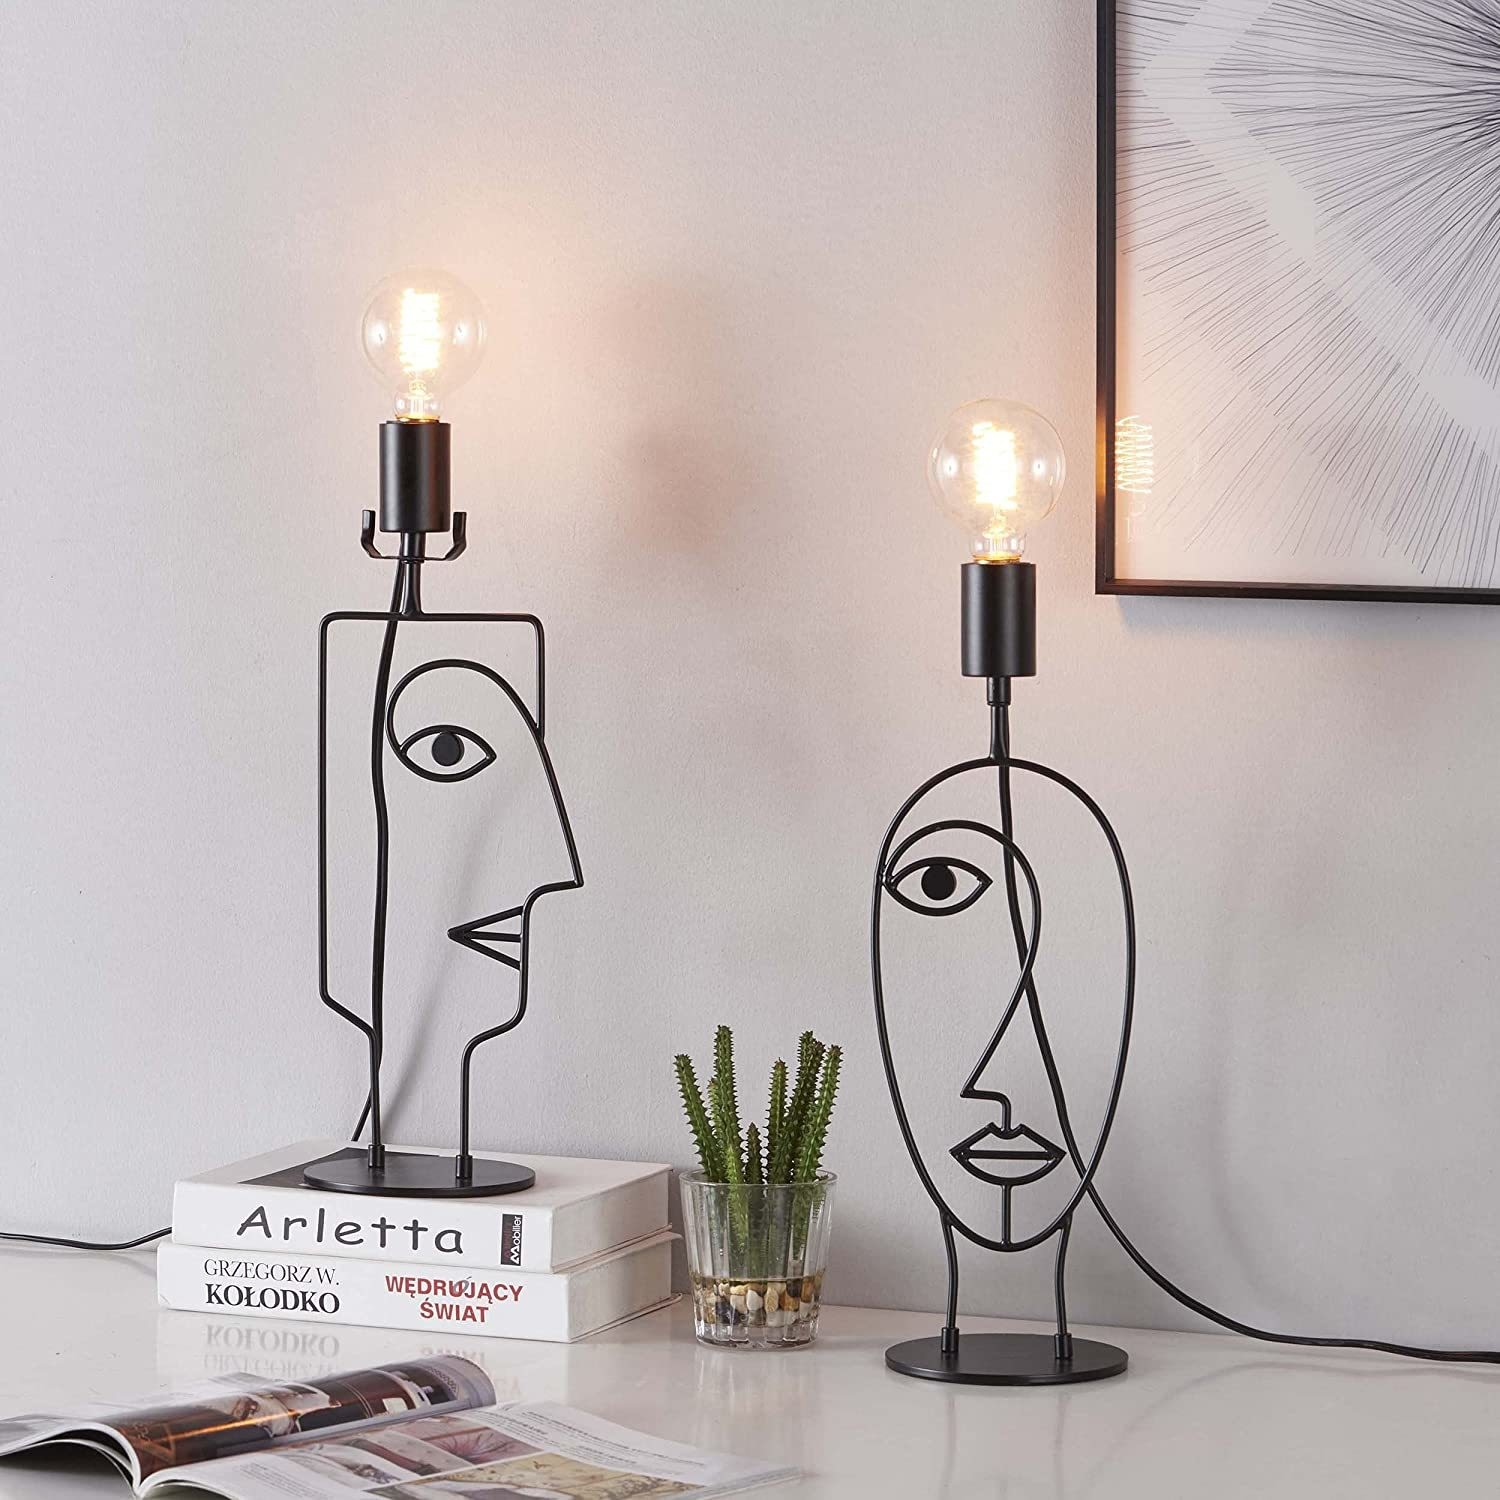 Amazon Decor That Will Spruce Up Any Room